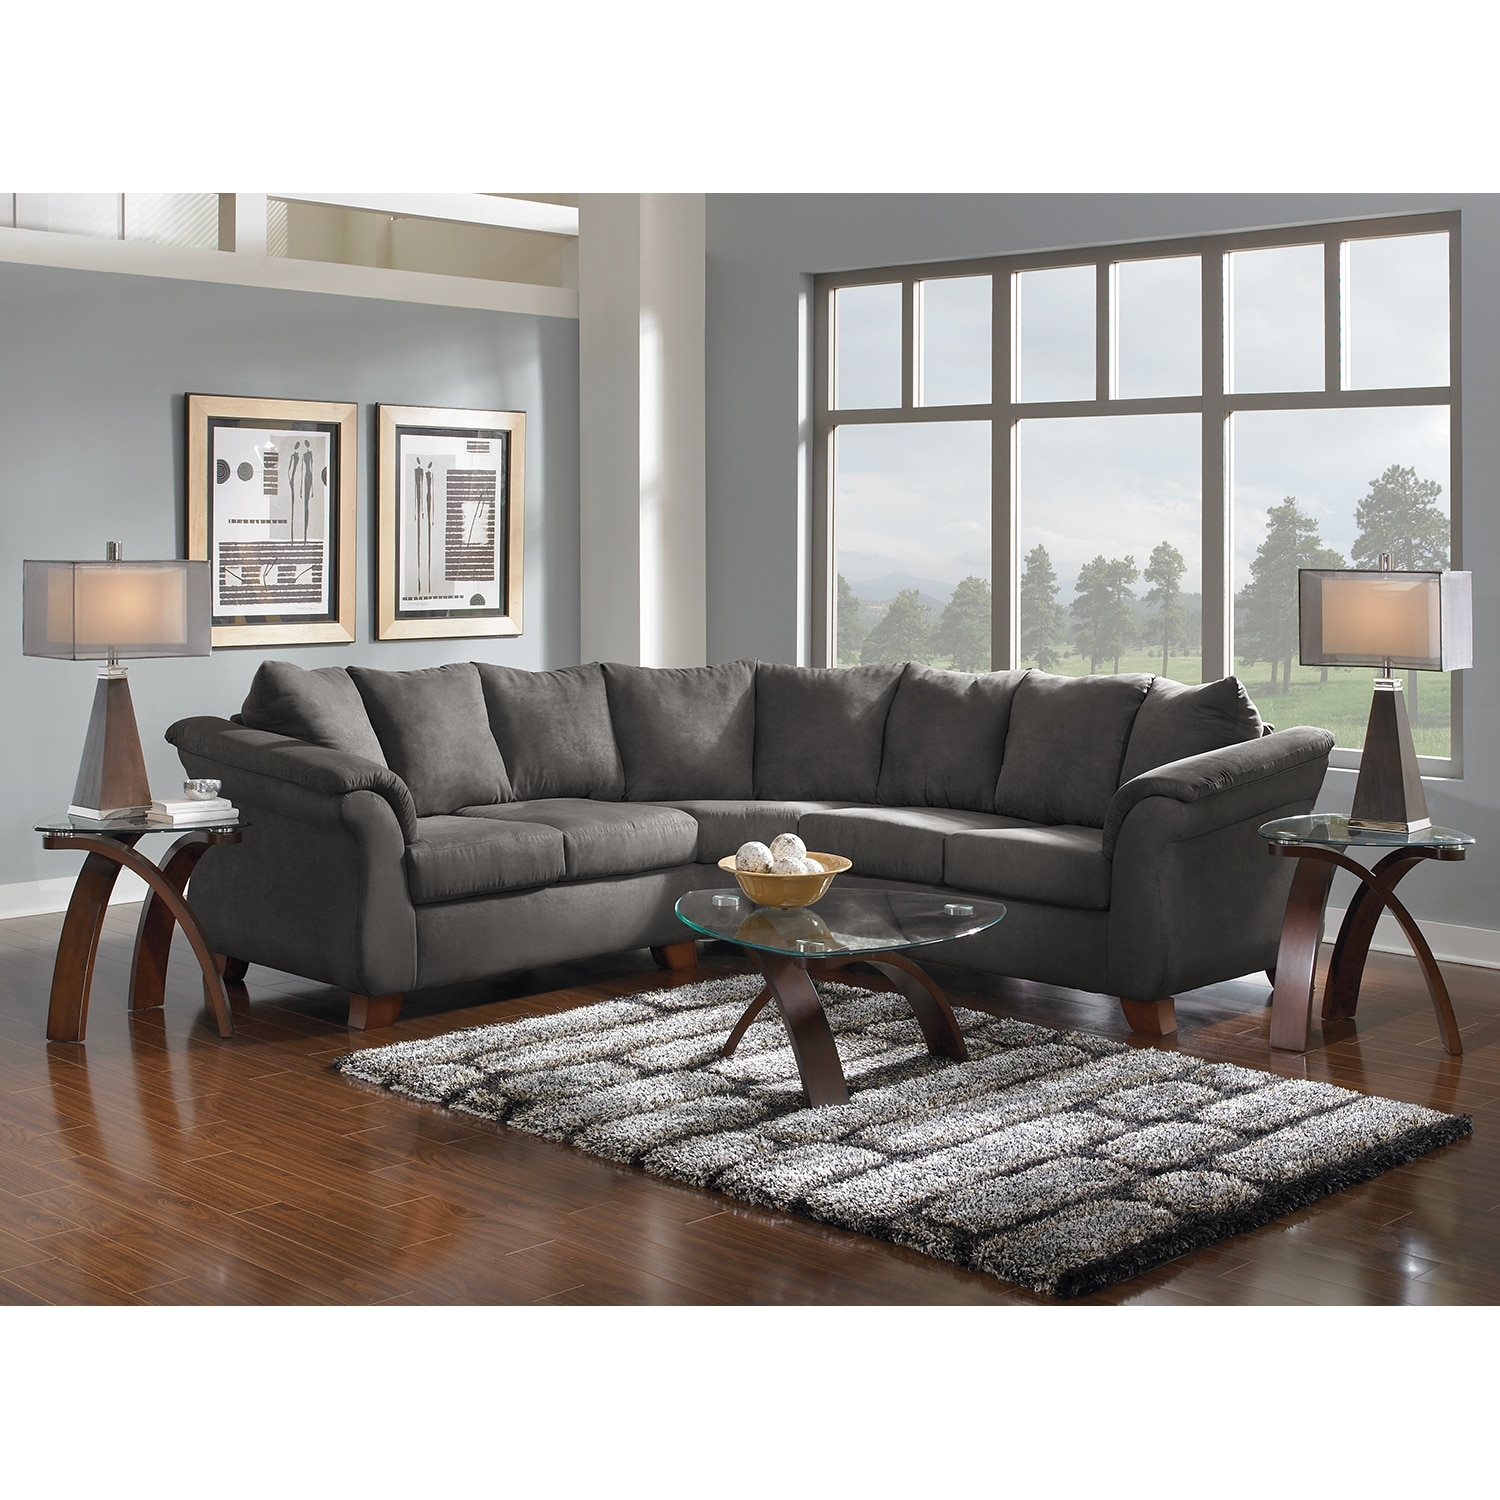 Adrian 2-Piece Sectional - Graphite | Value City Furniture